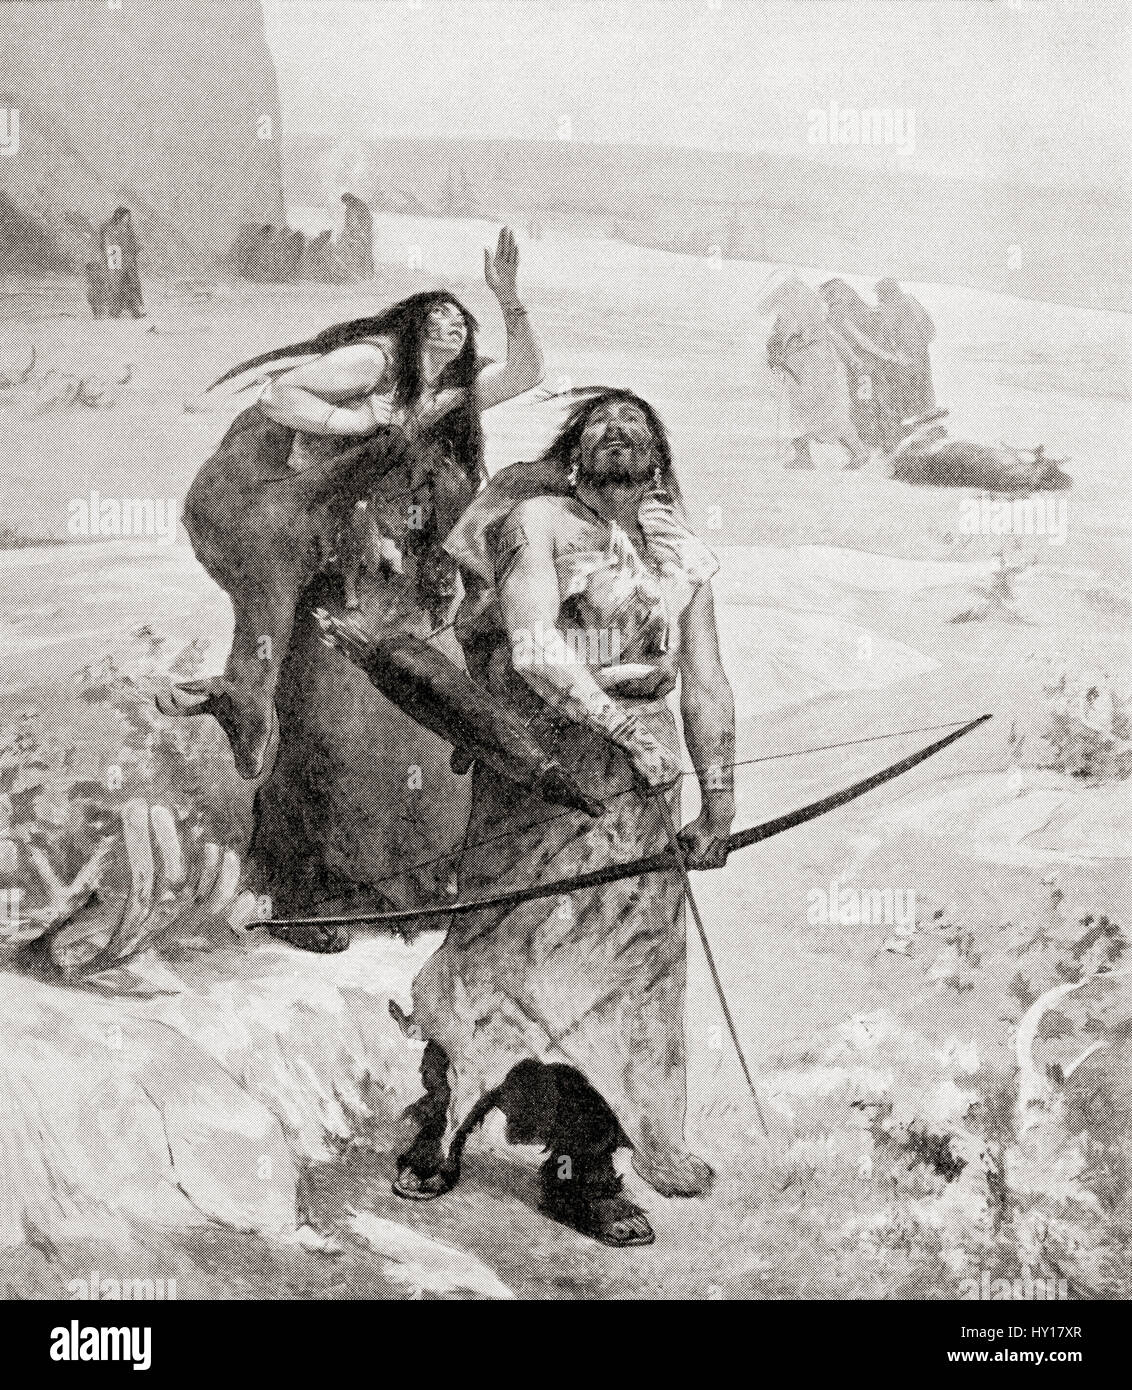 Neolithic man.  From Hutchinson's History of the Nations, published 1915. - Stock Image